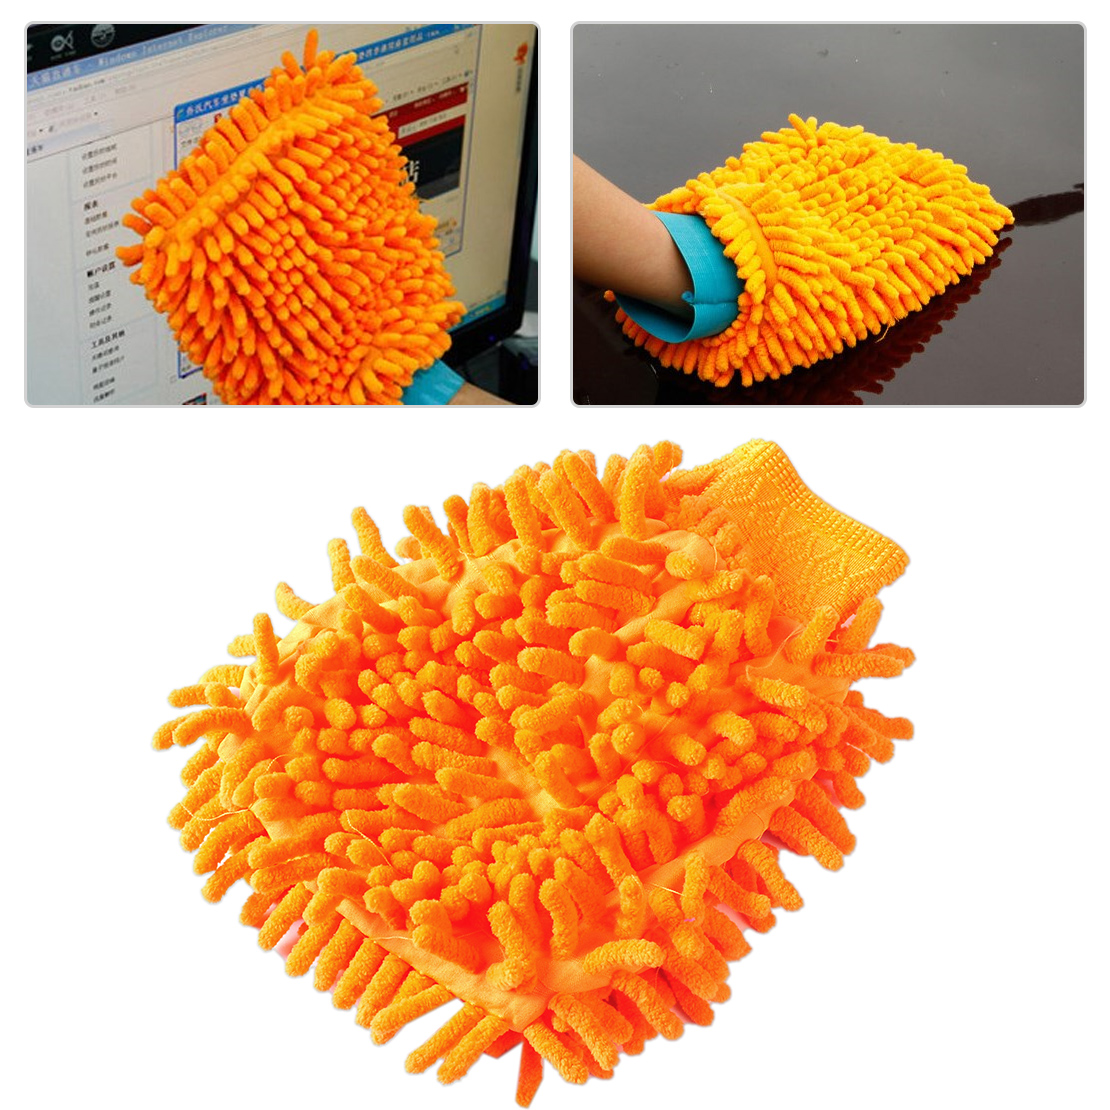 DWCX Car Cleaning Wash Glove Ultrafine Fiber Chenille Soft Towel Microfiber Cleaning Care Detailing For Automotives Household